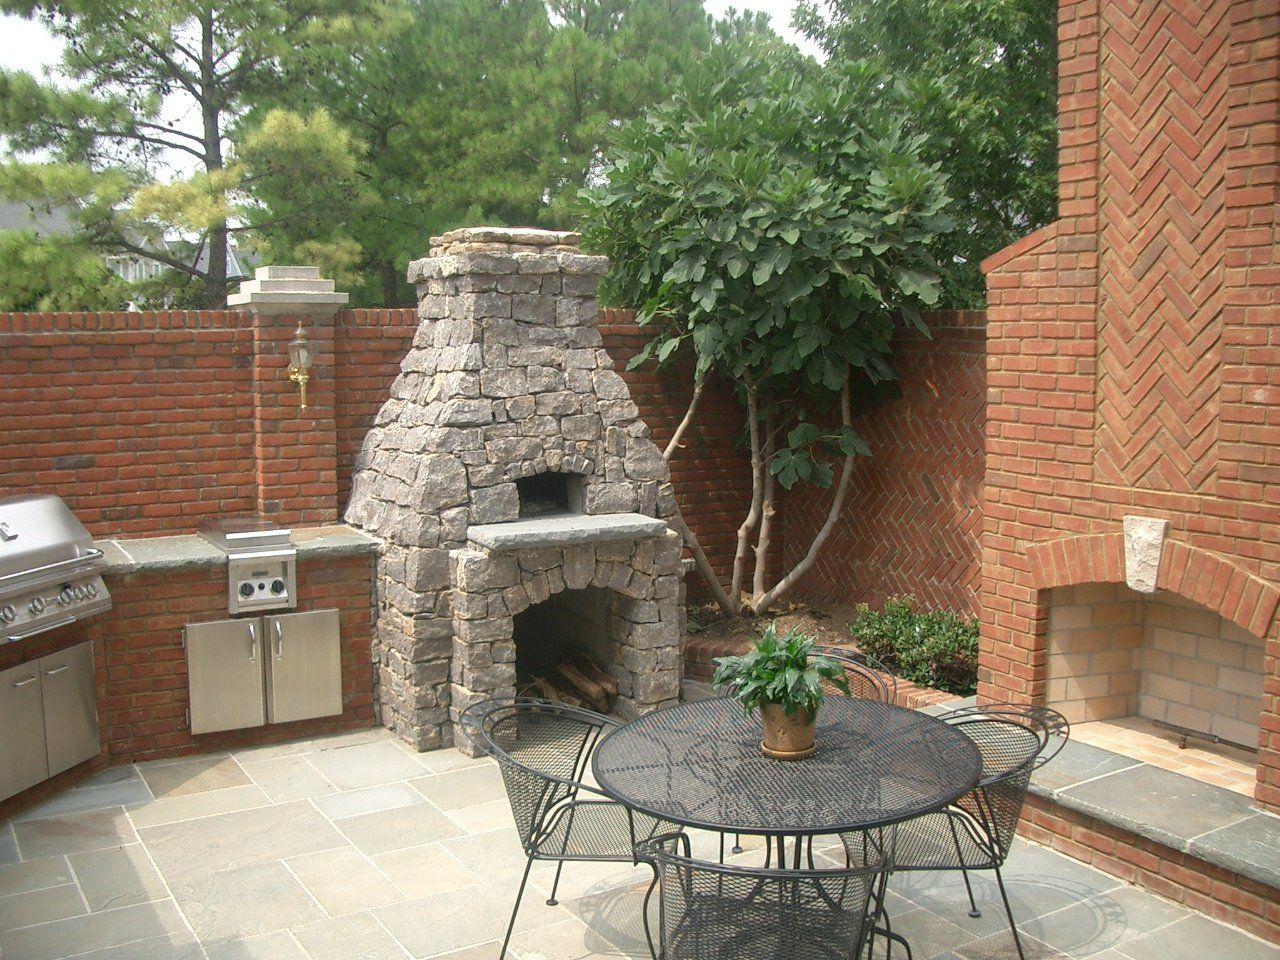 round stone outdoor fireplace fireplaces pinterest outdoor kitchen plans pizza oven kits. Black Bedroom Furniture Sets. Home Design Ideas